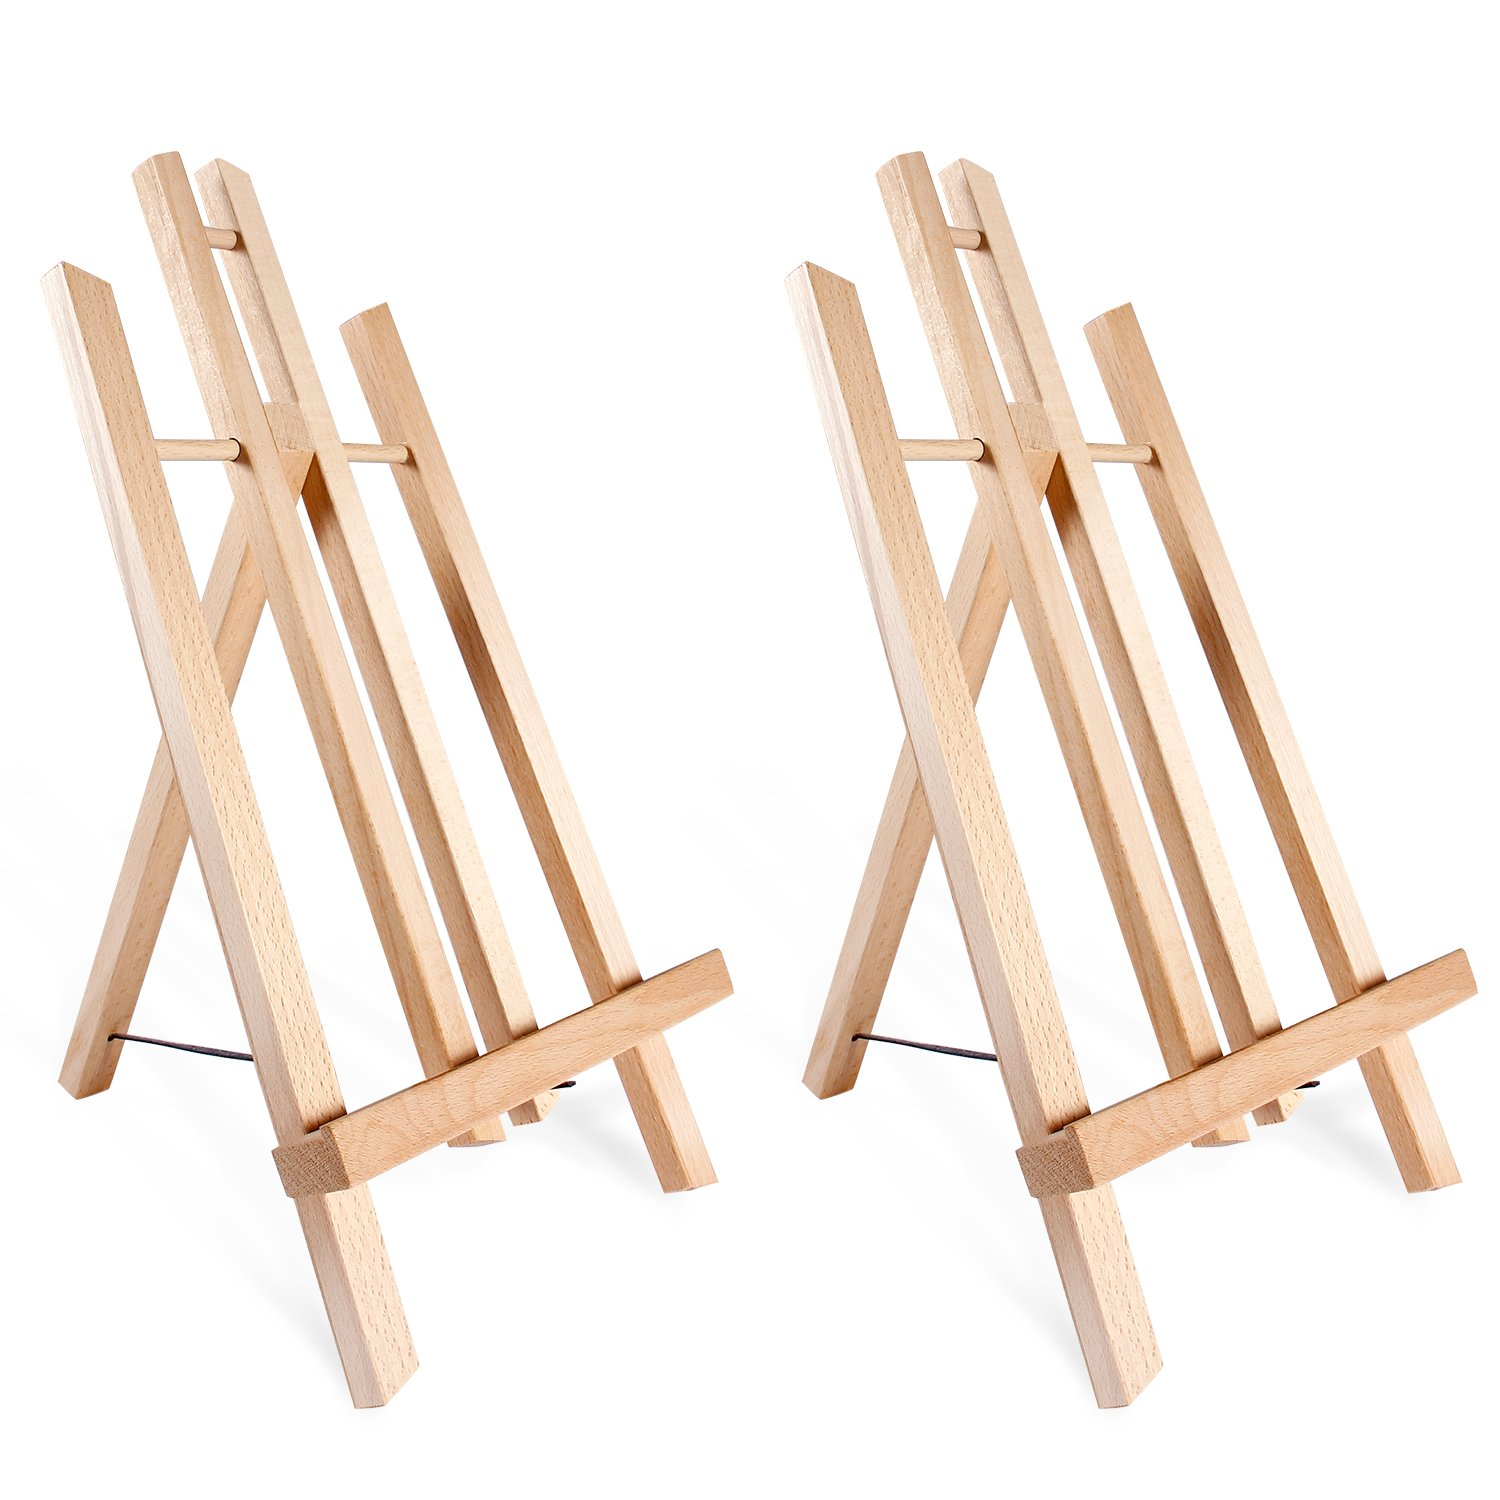 Tabletop Art Easel Set, Ohuhu 14'' Tall Display Stand A-Frame Mini Wood Painting Easels for Kids Artist Adults Students Classroom Table top Display, 2-Pack, Back to School Art Supplies